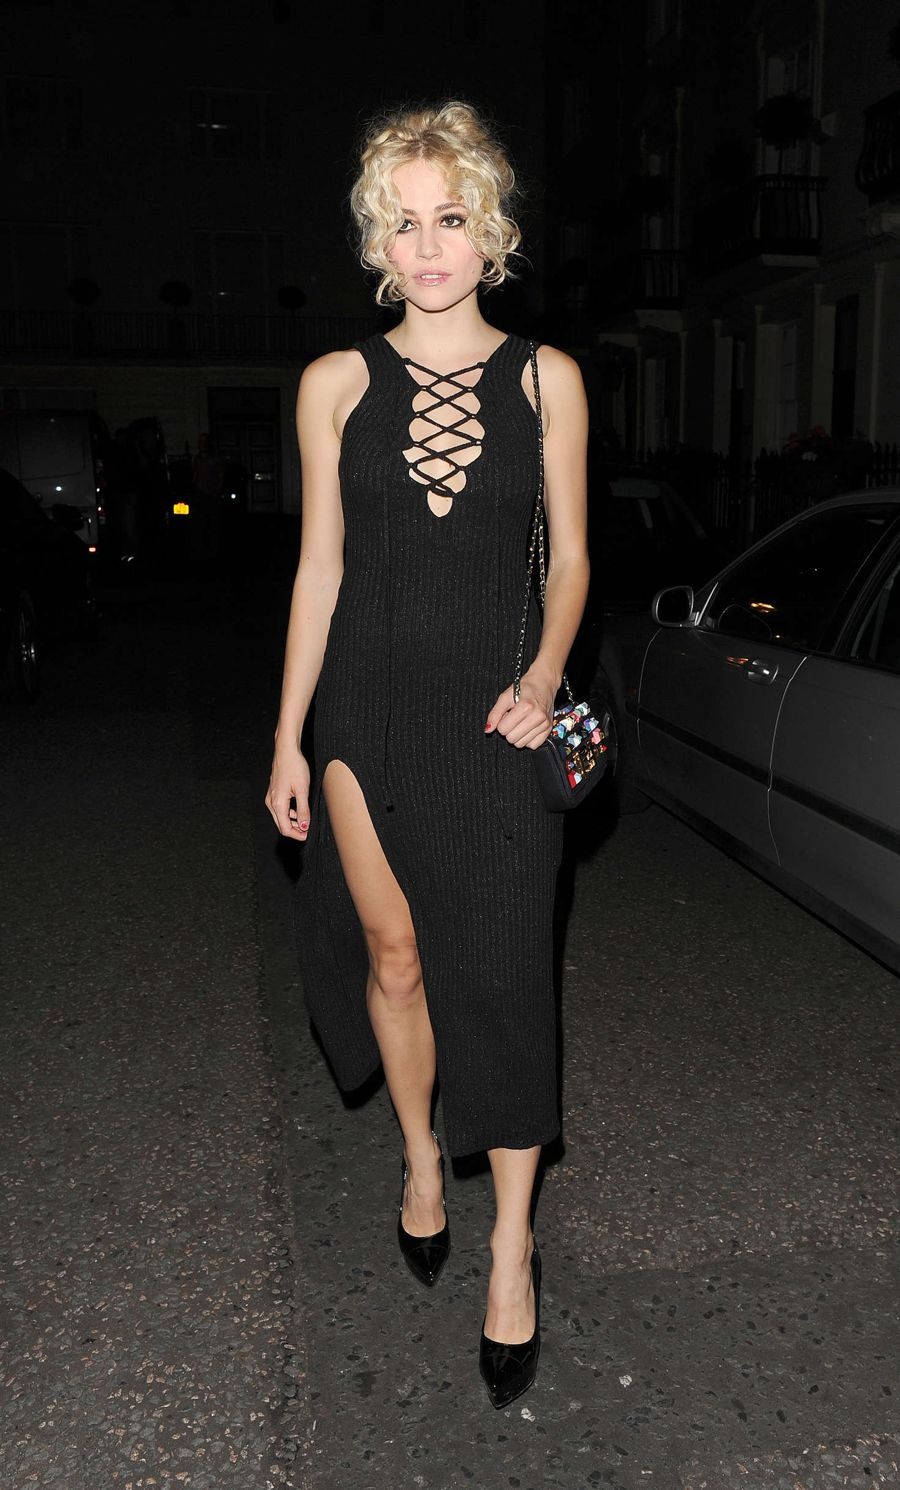 Pixie Lott in Black Dress Leaving The Haymarket Theatre